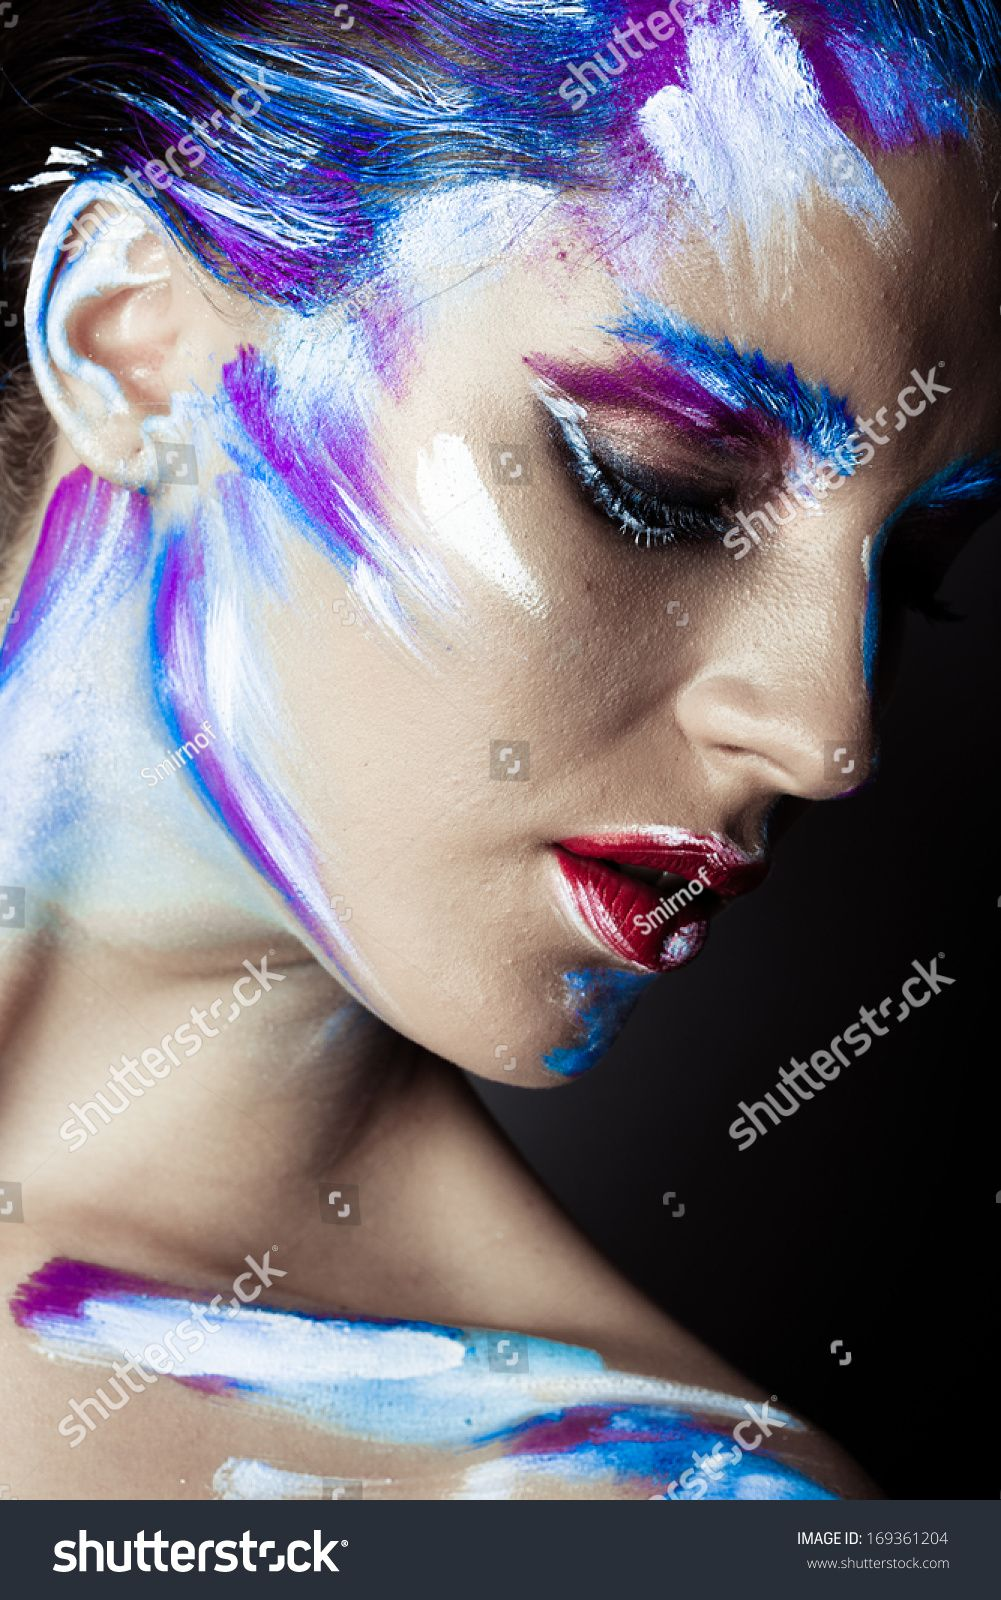 Pin by Whitney Meltz on makeup Abstract face art, Face